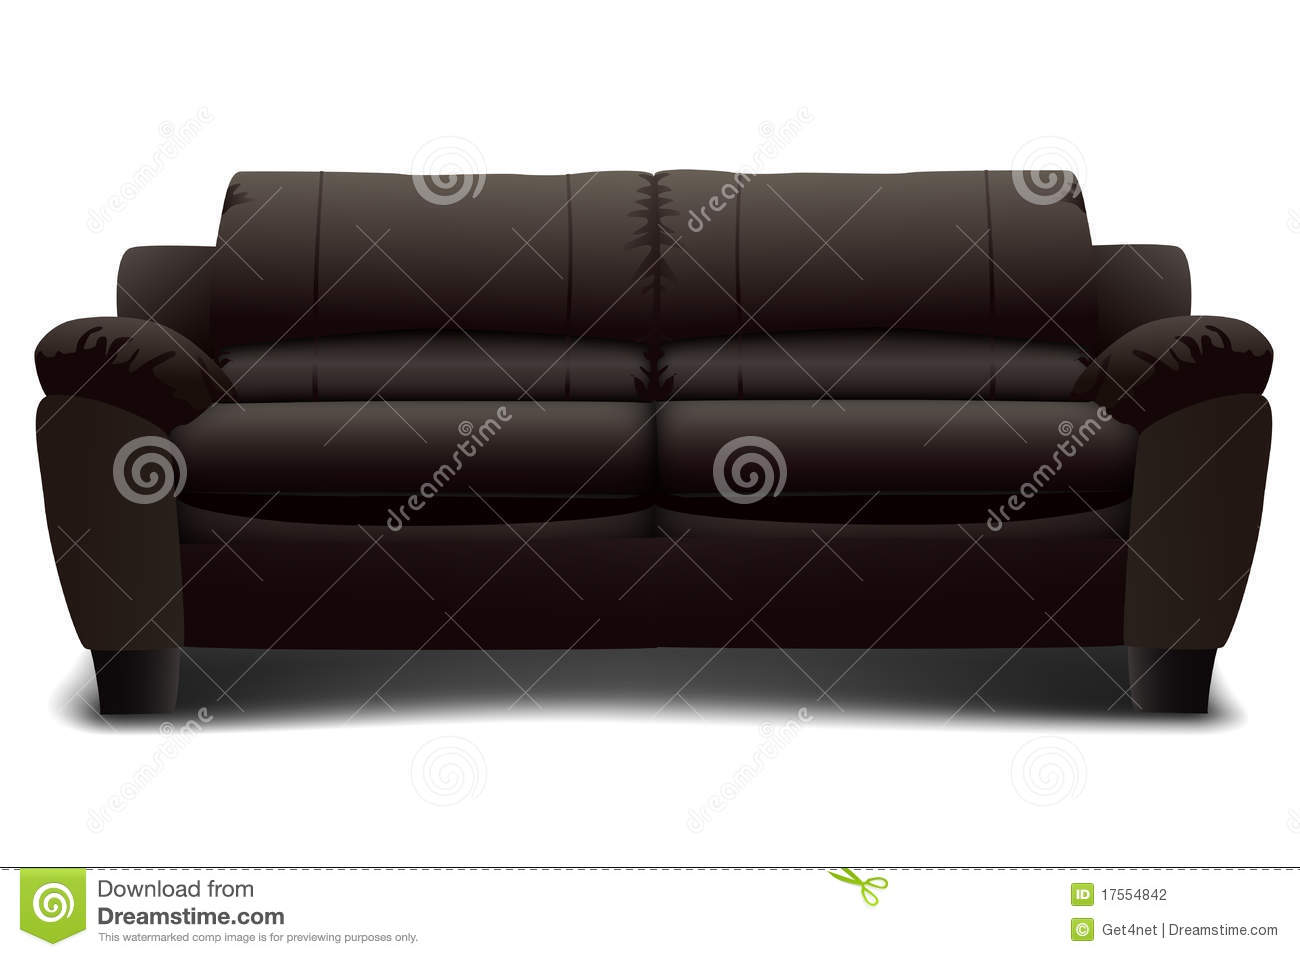 Sofa Set Images Free Download Sofa Set Stock Vector Illustration Of Indoors Comfortable 17554842